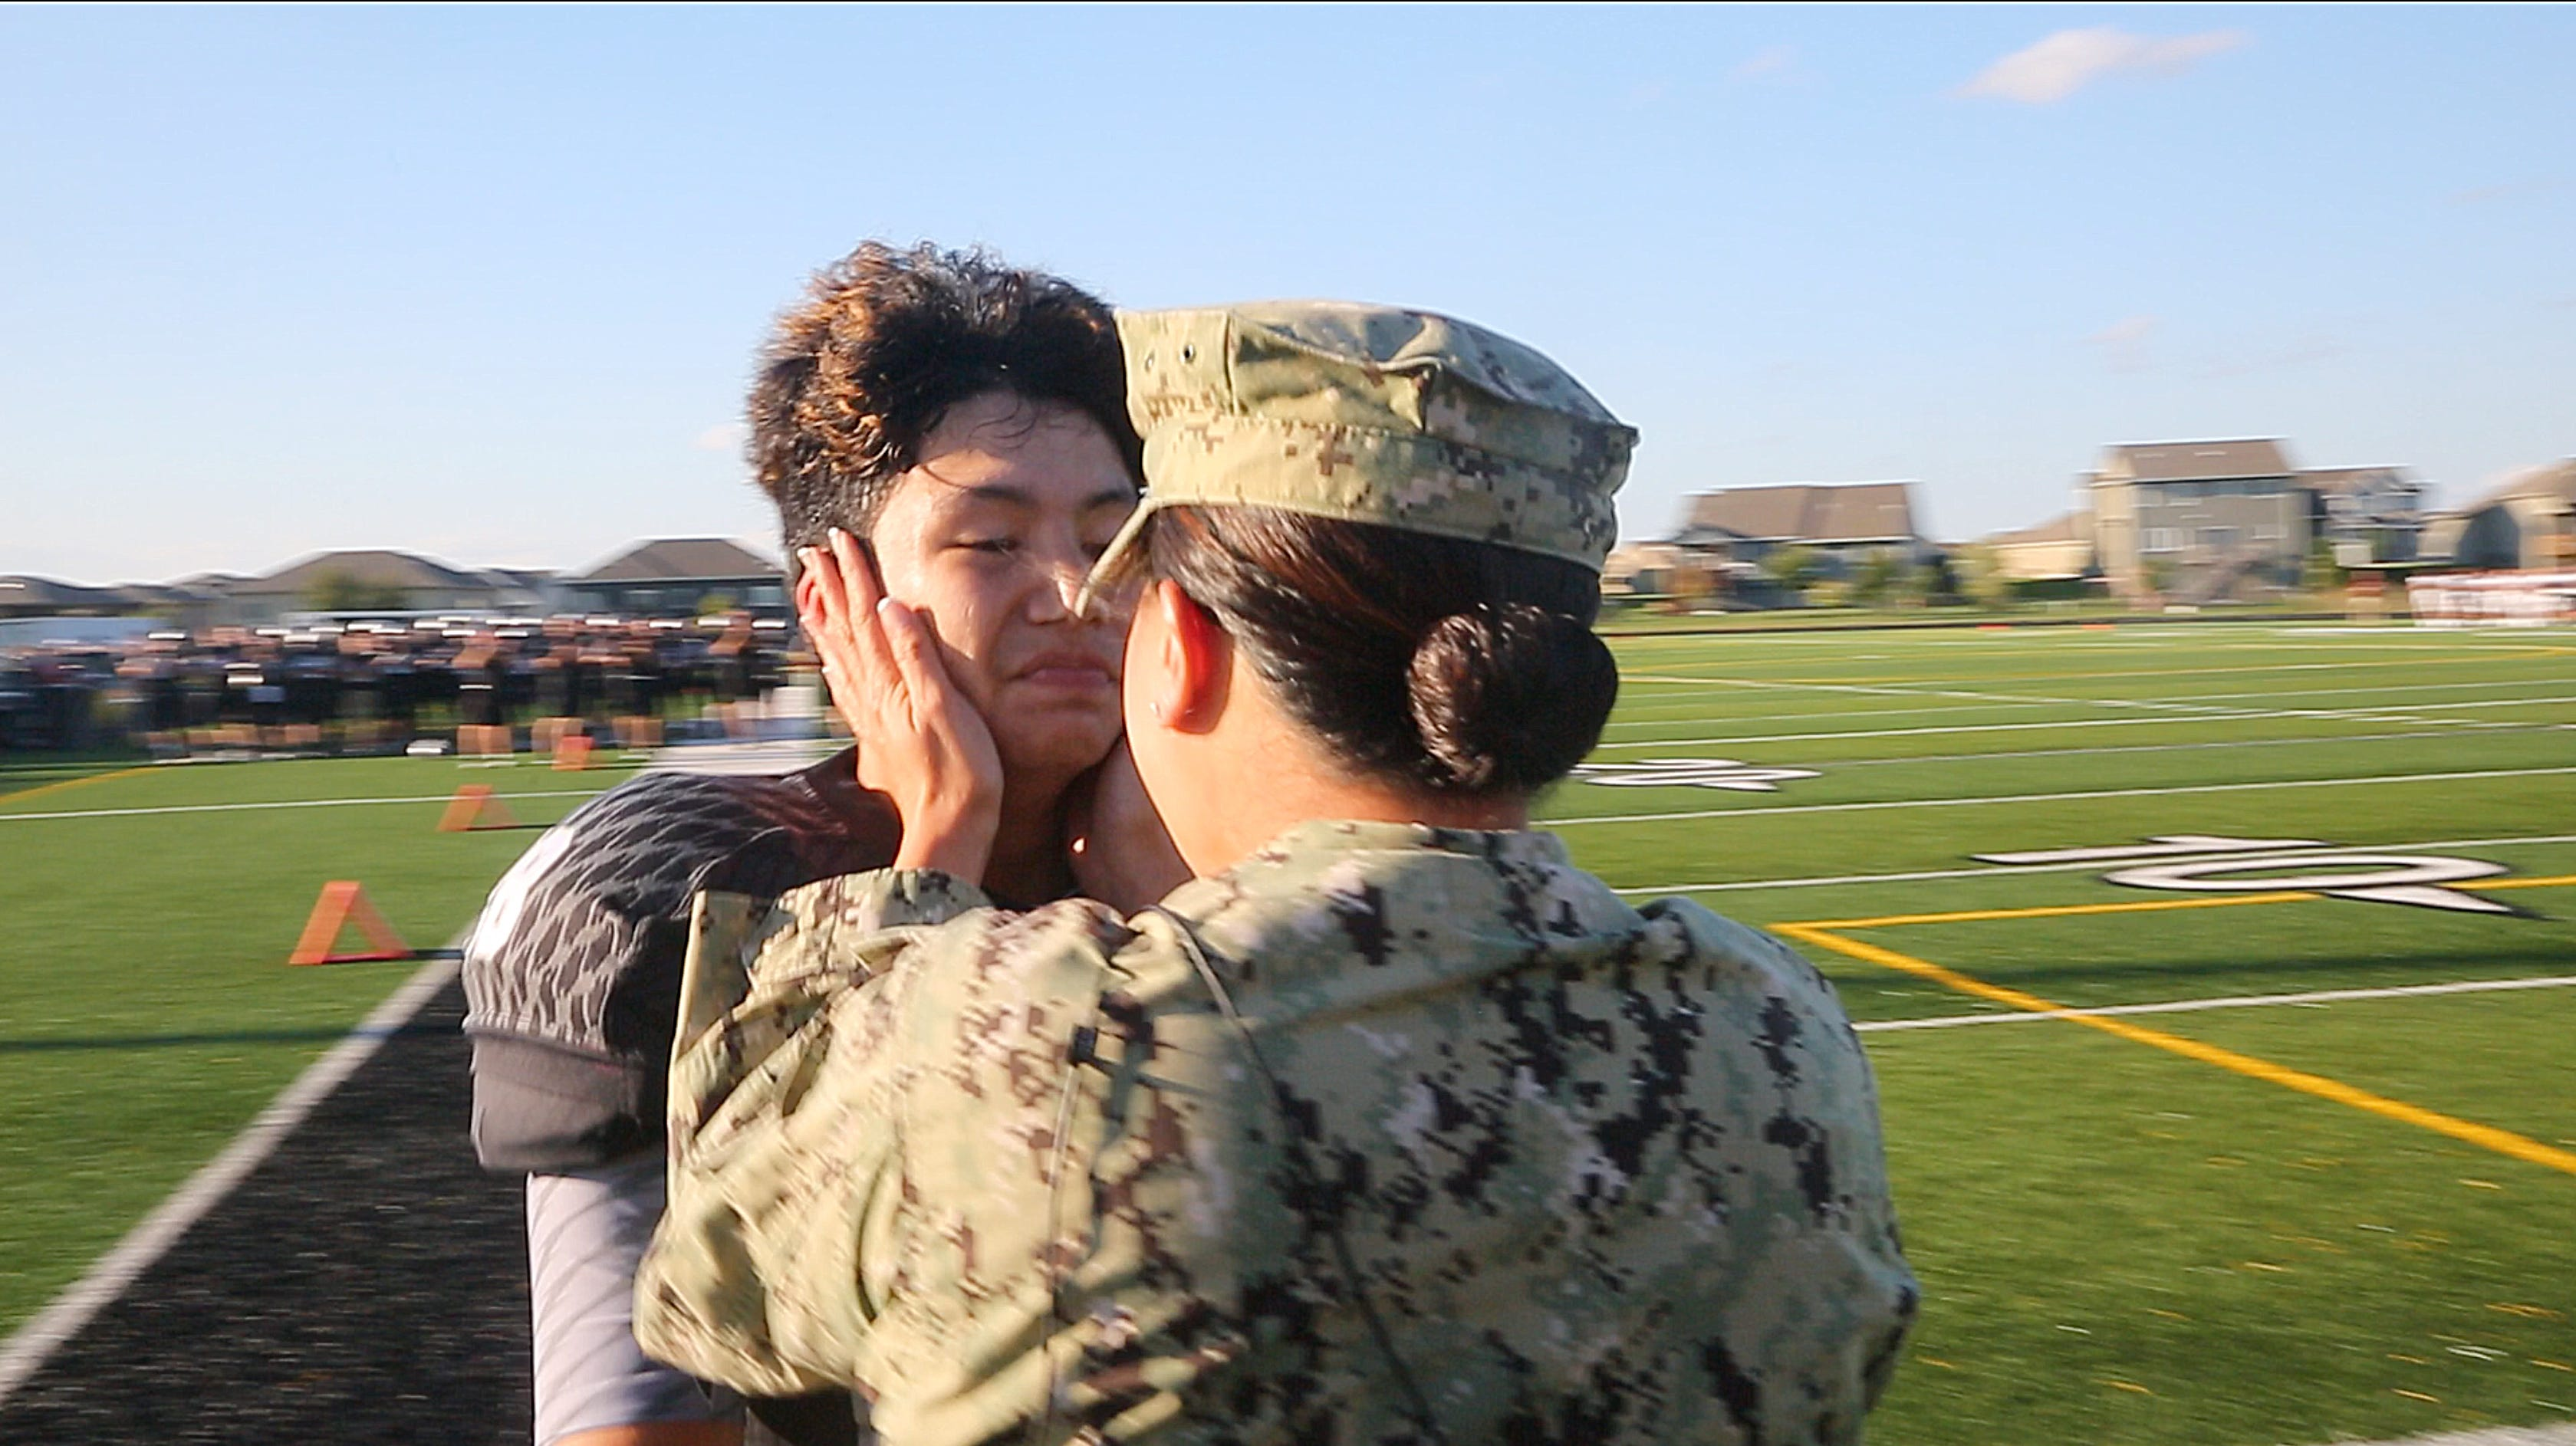 Navy mom surprises son at Ankeny Centennial football game